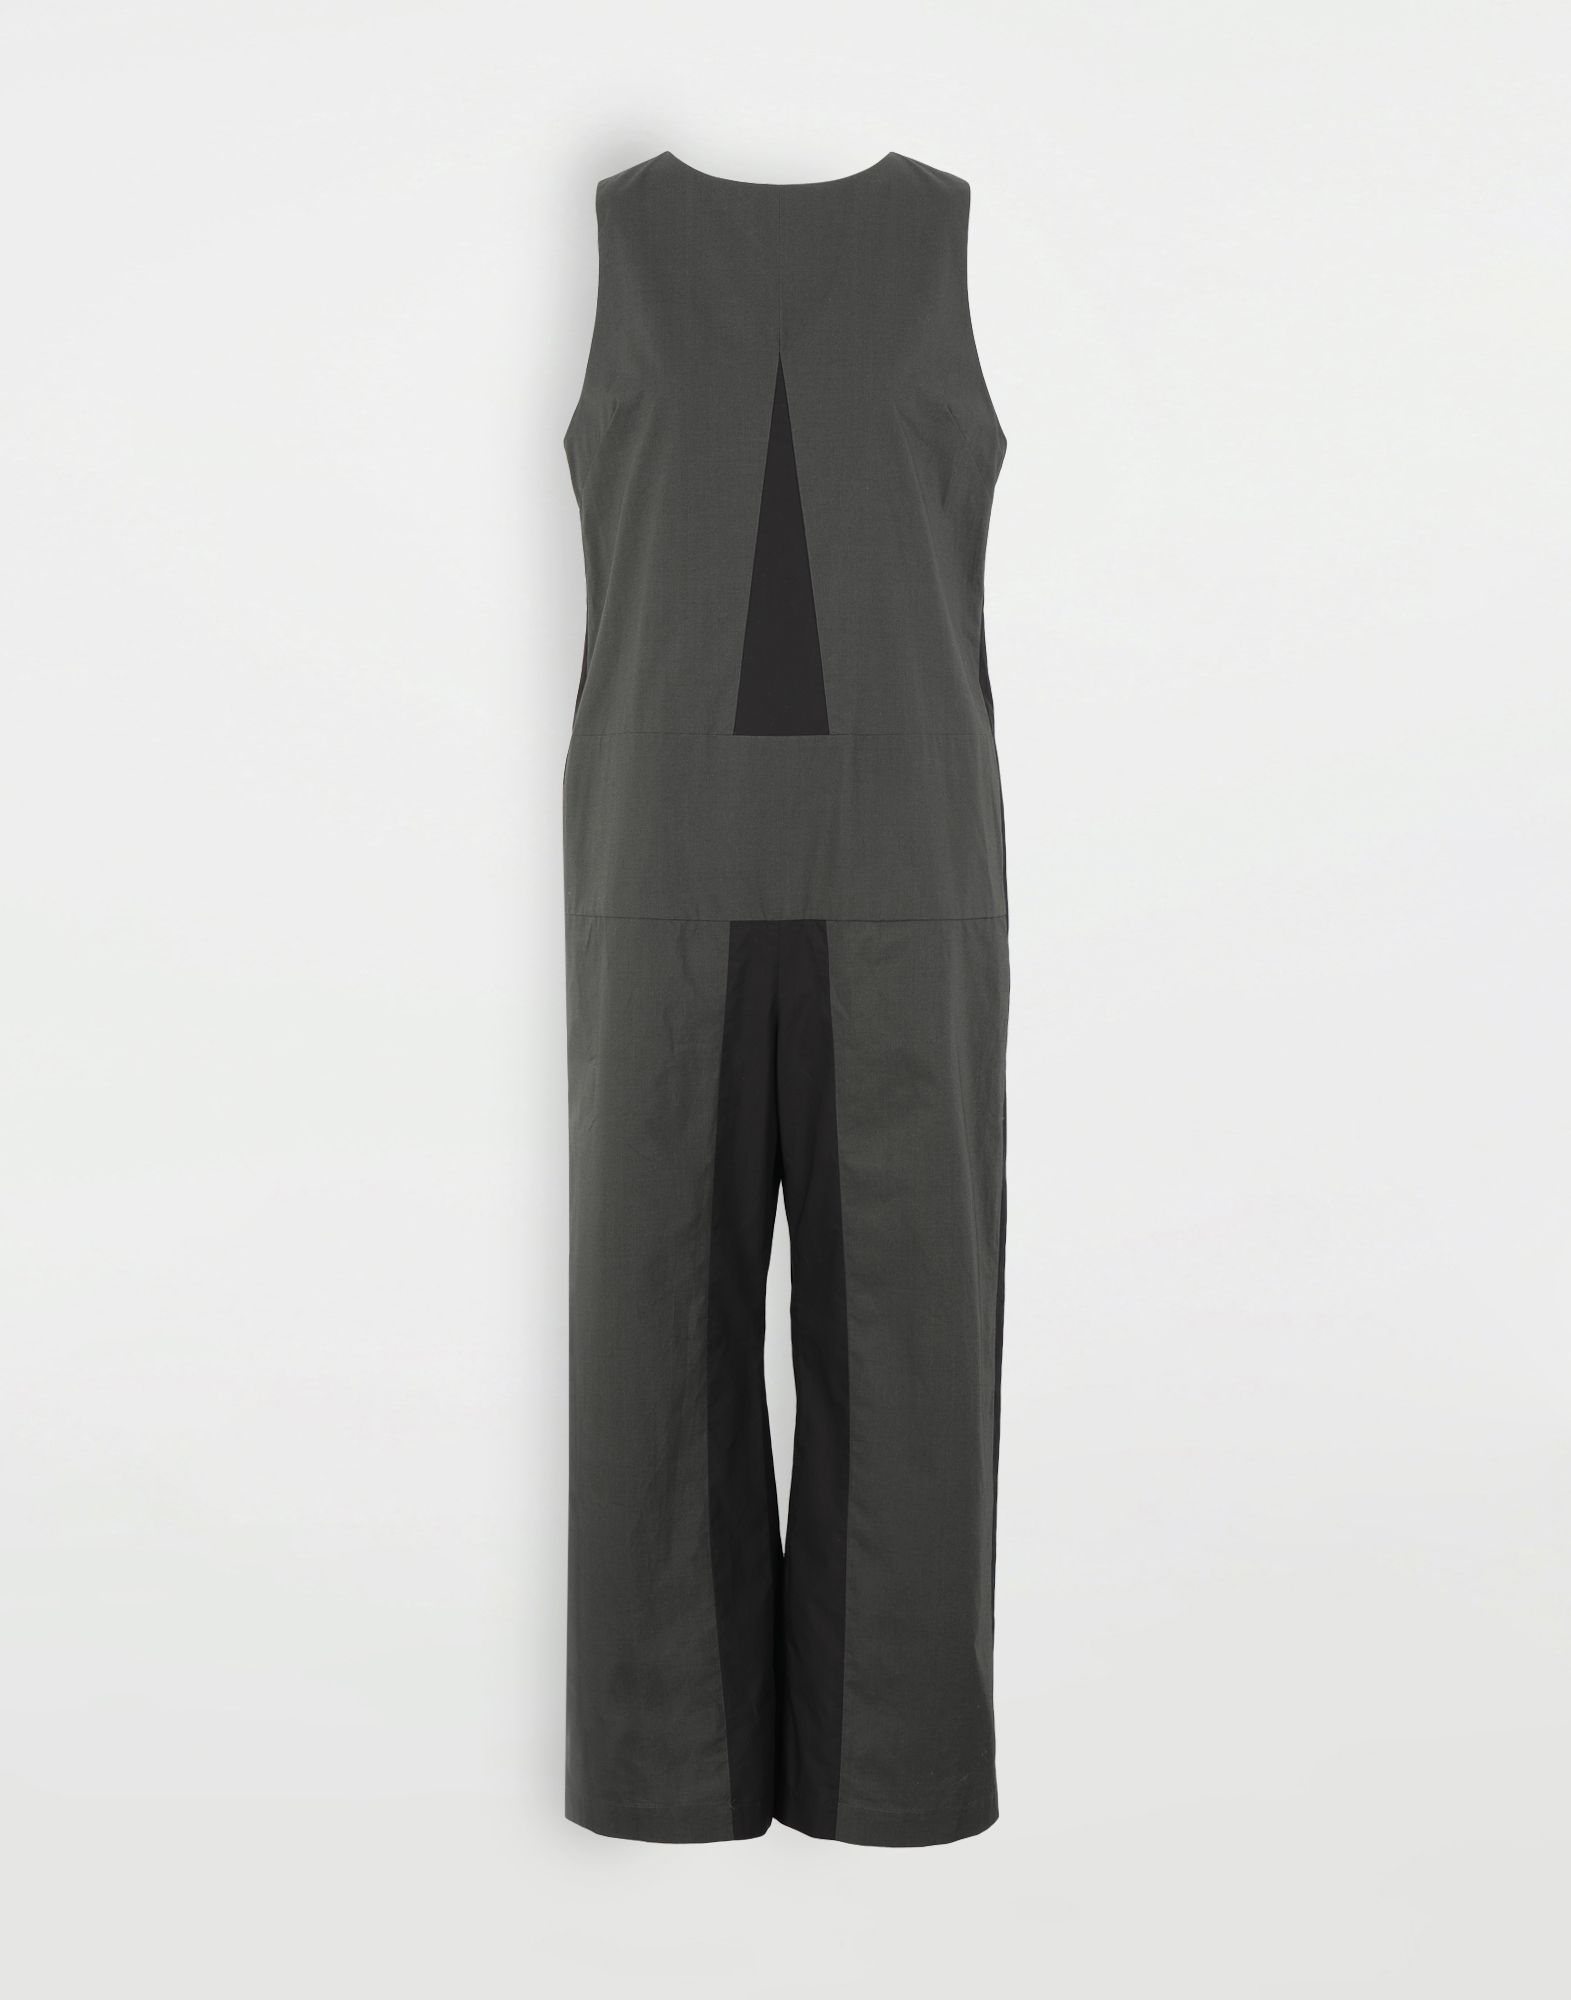 MM6 MAISON MARGIELA 'A' jumpsuit Jumpsuit Woman f